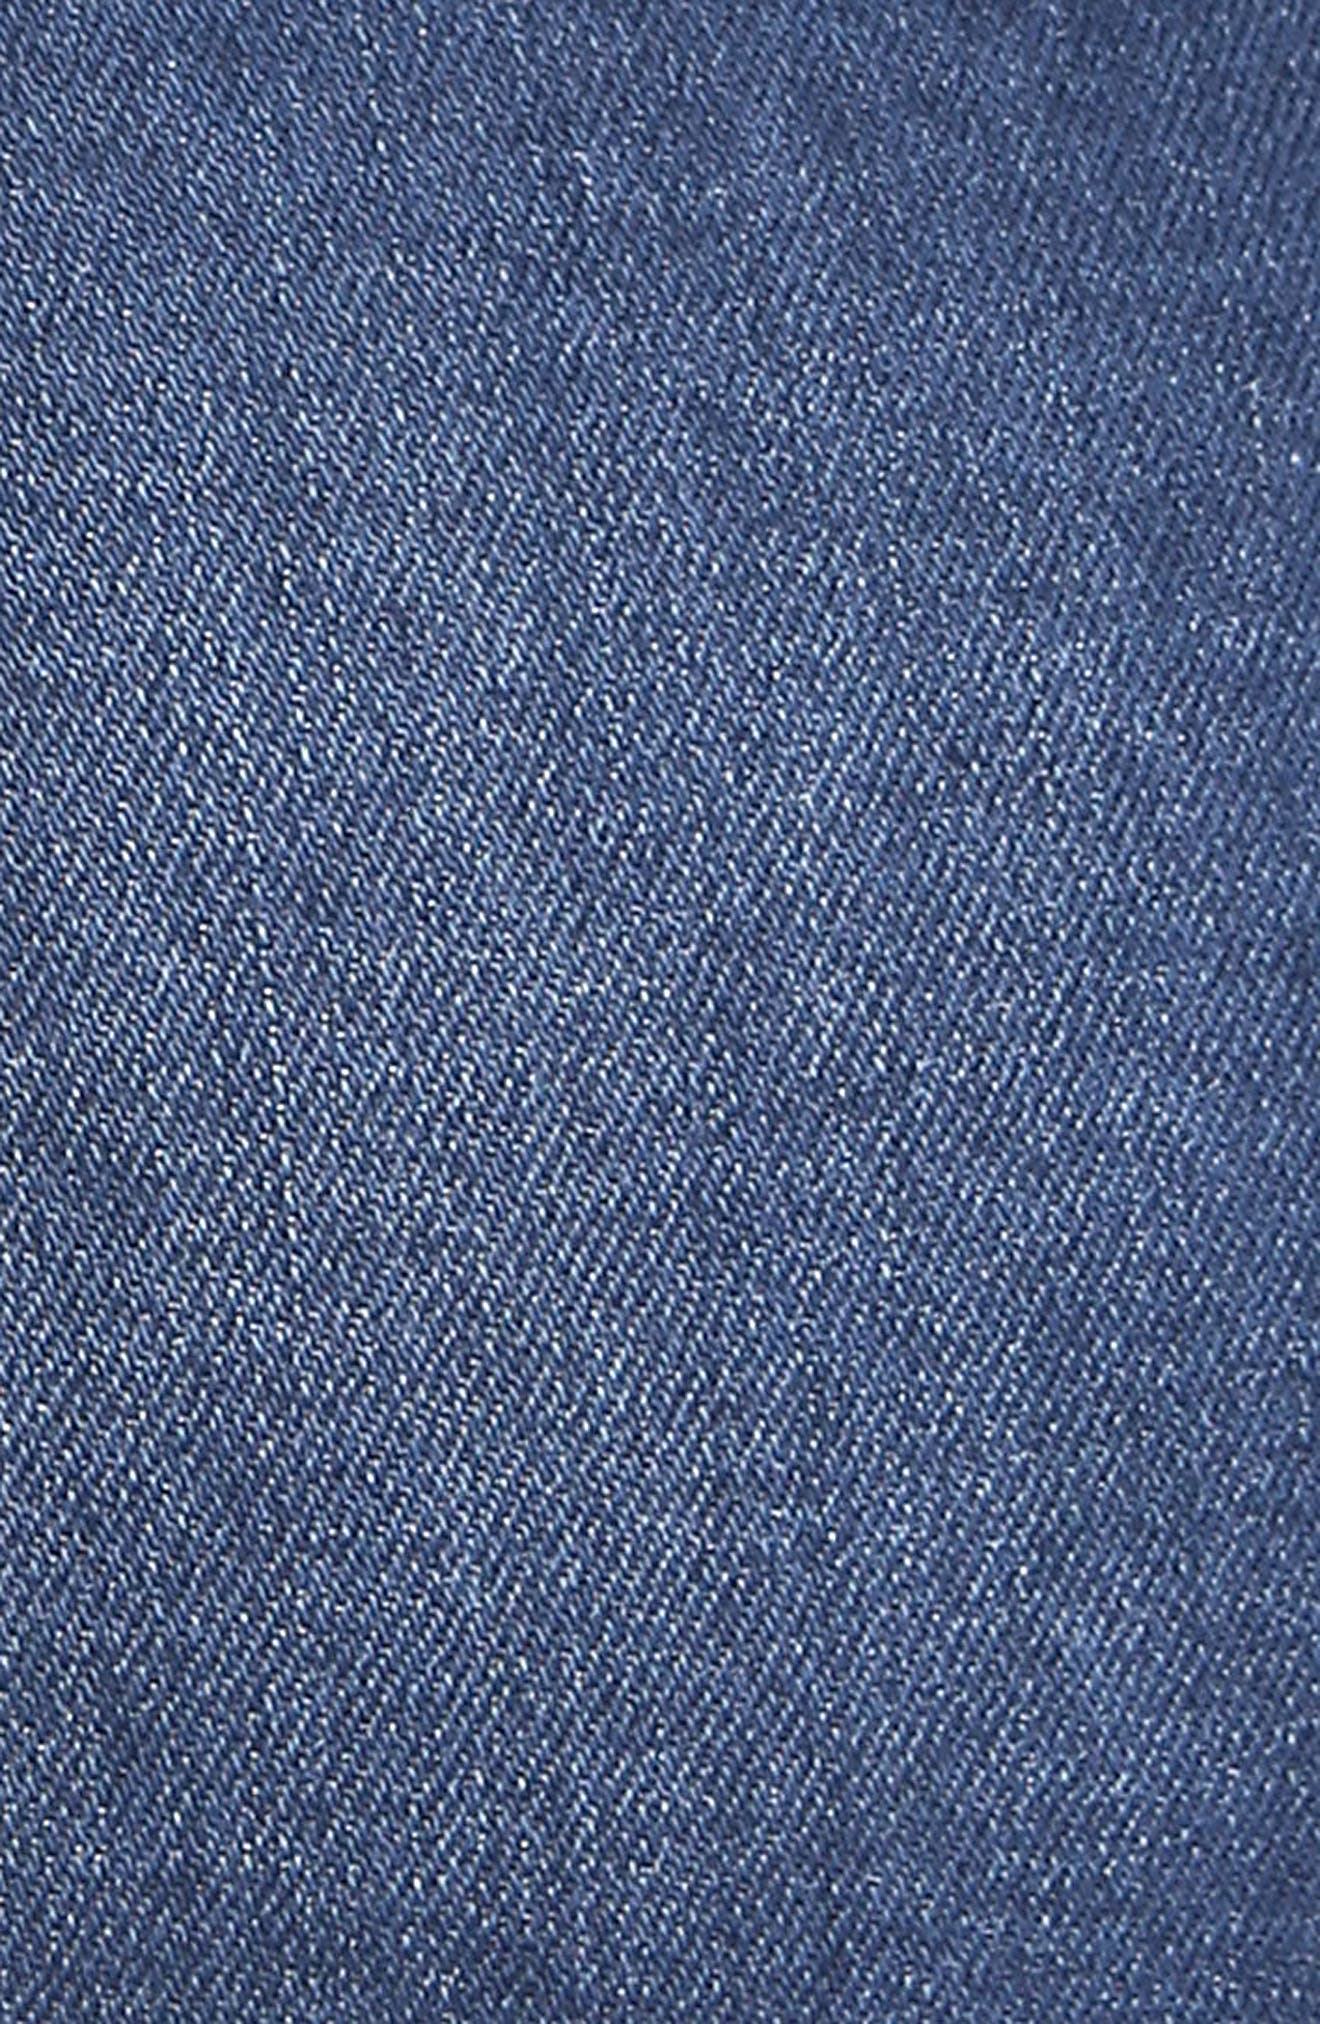 Alternate Image 4  - KUT from the Kloth Donna High Rise Ankle Skinny Jeans (Recognizable)